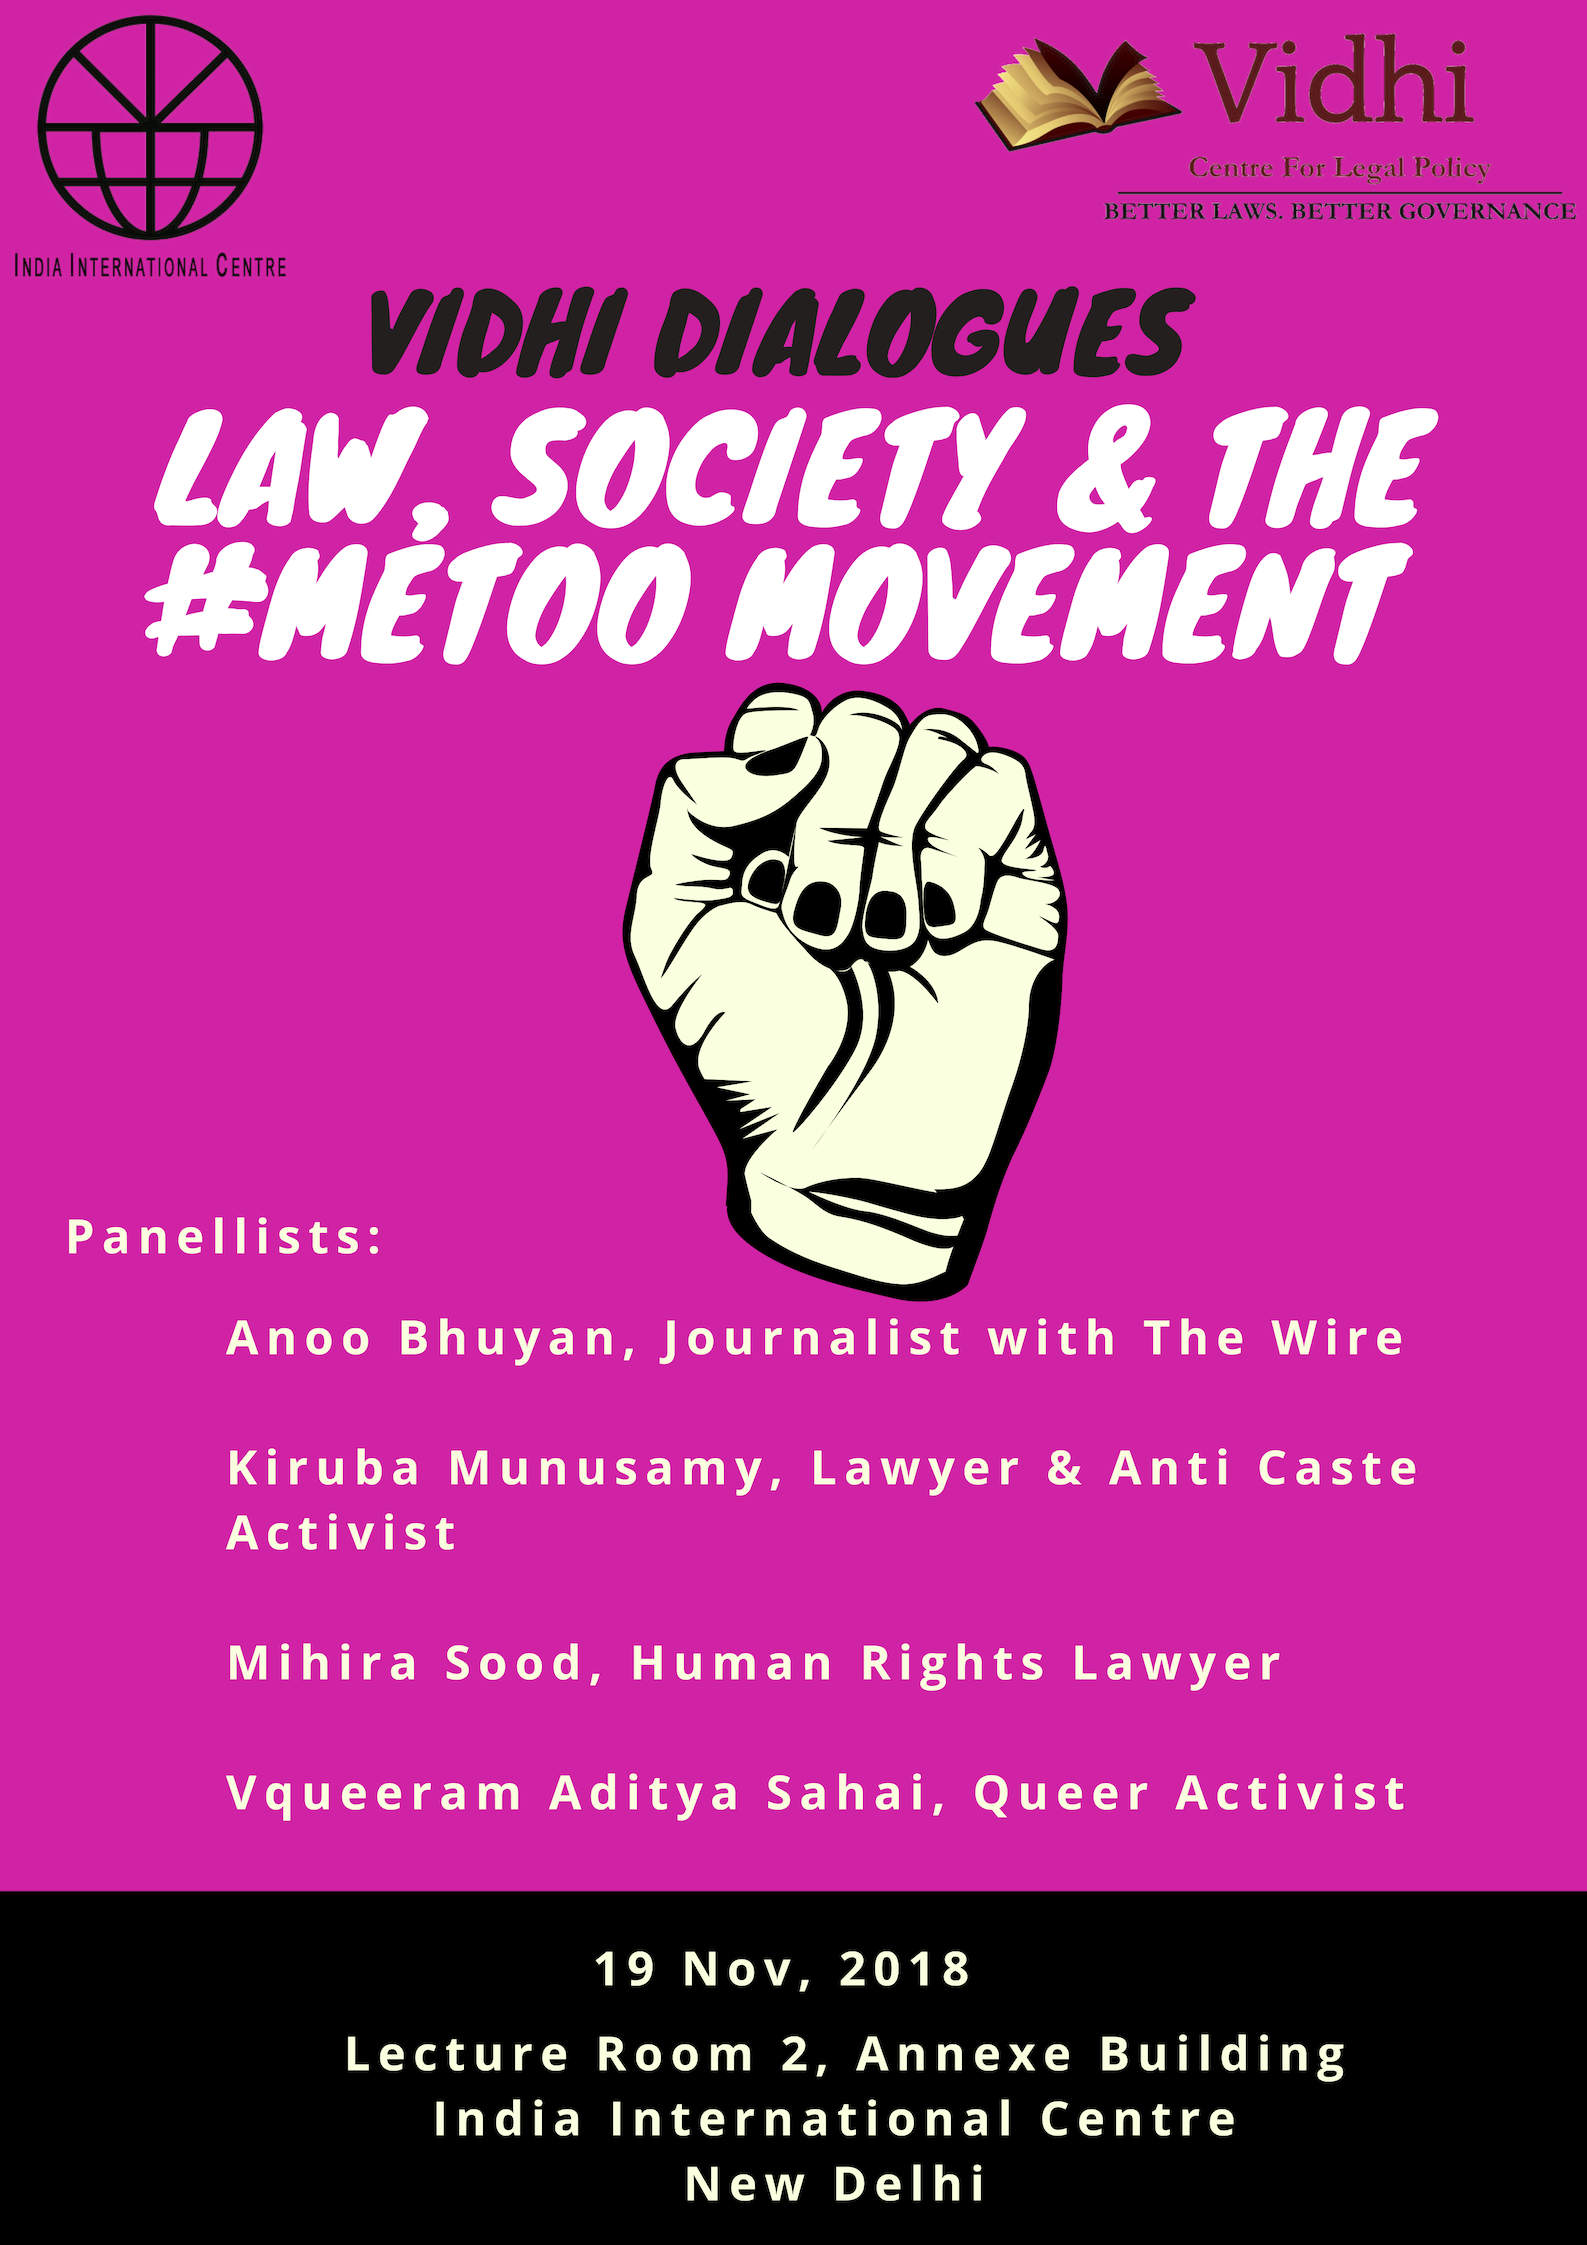 The Vidhi Dialogues: Law Society and the #MeToo Movement 1